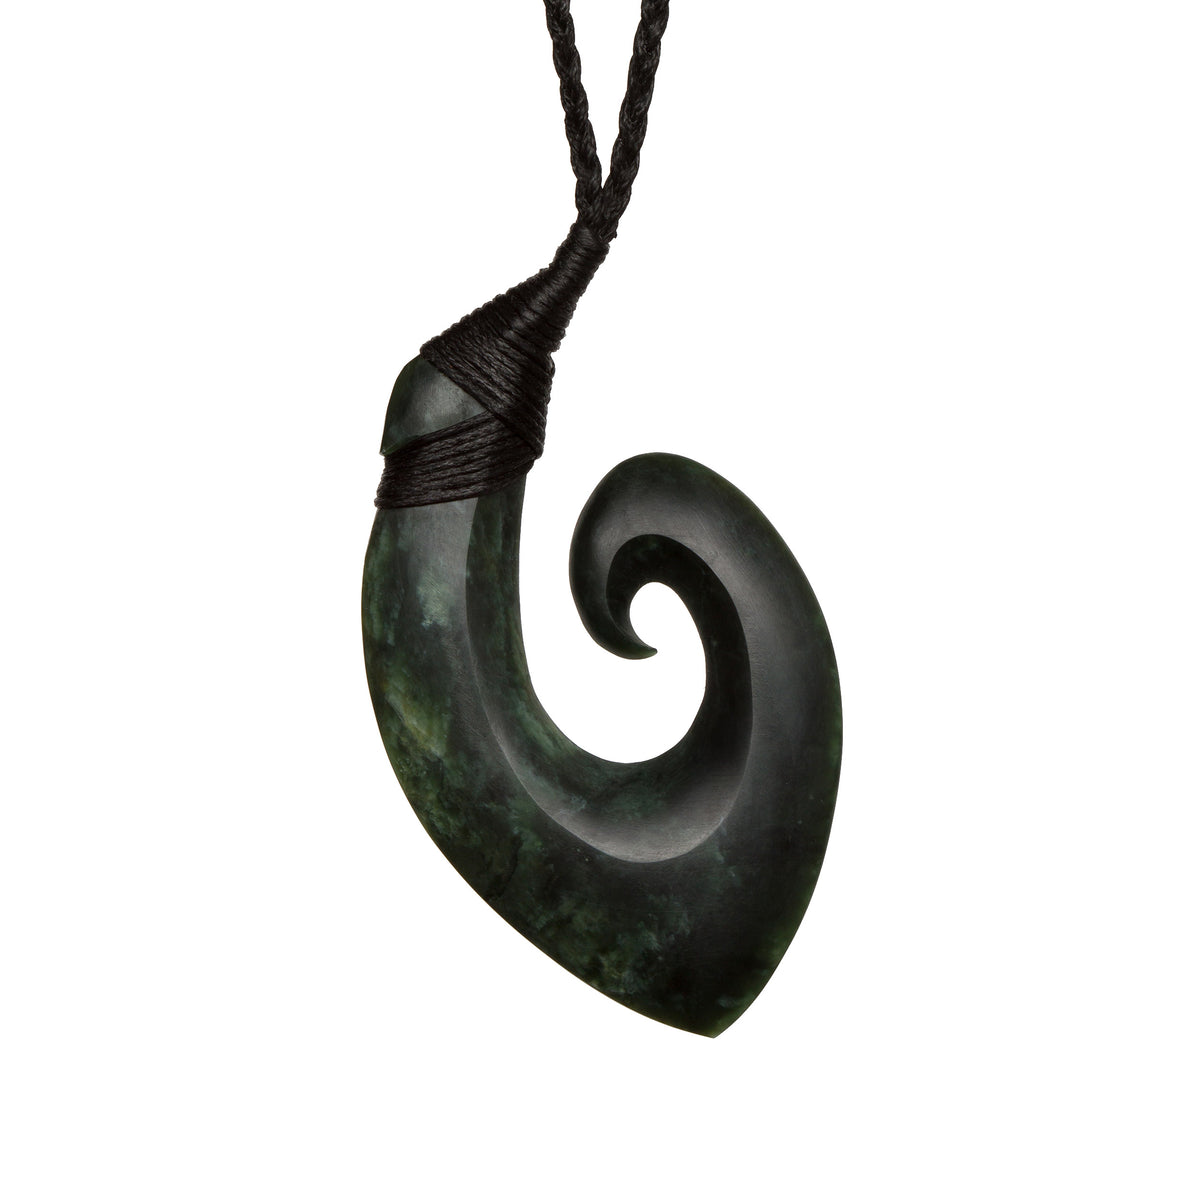 65mm x 38mm / New Zealand Pounamu // TAMAHK448P-B-2